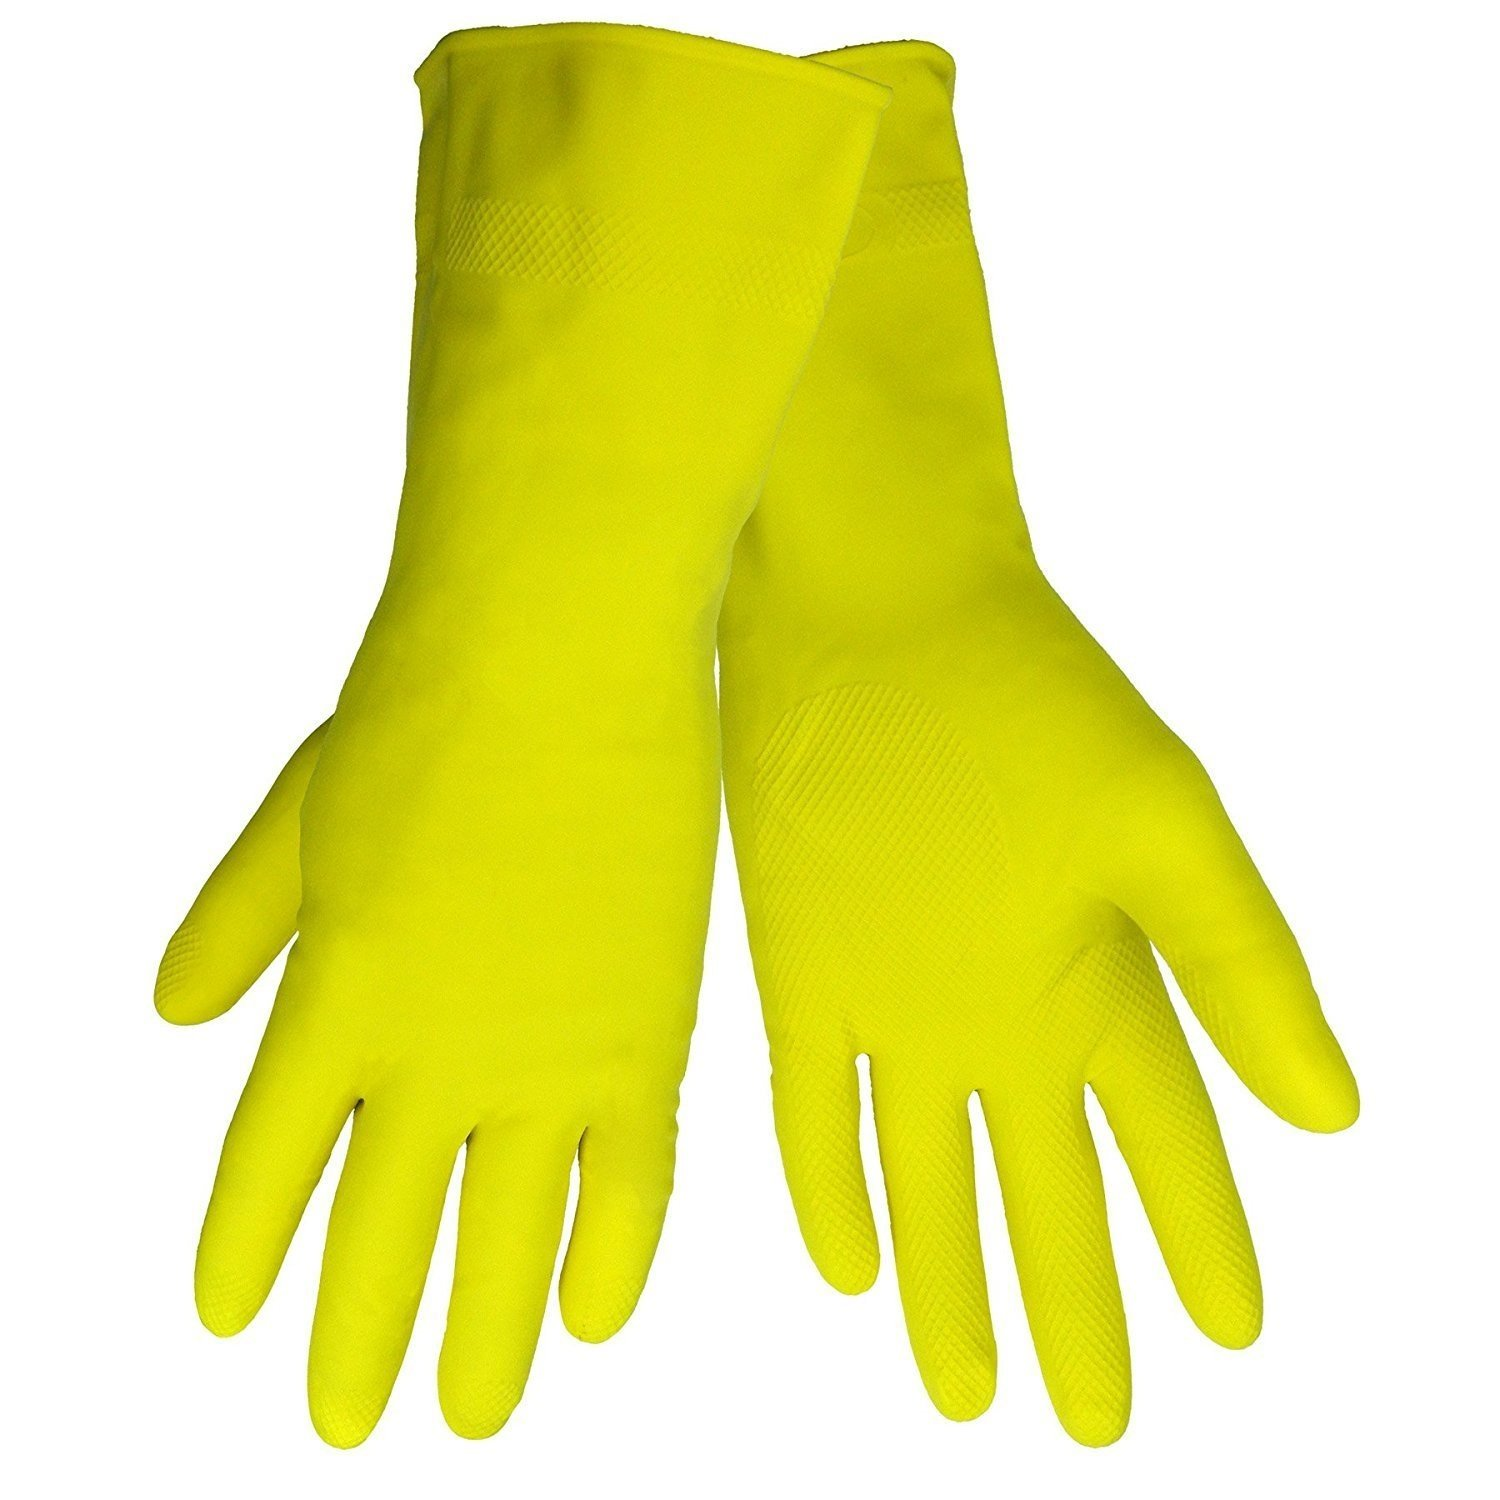 Global Glove 150F Flock Lined Latex Premium Grade Diamond Pattern Glove with Rolled Cuff and Chlorinated Liner, Chemical Resistant, Yellow, Pack of 12 (Small)